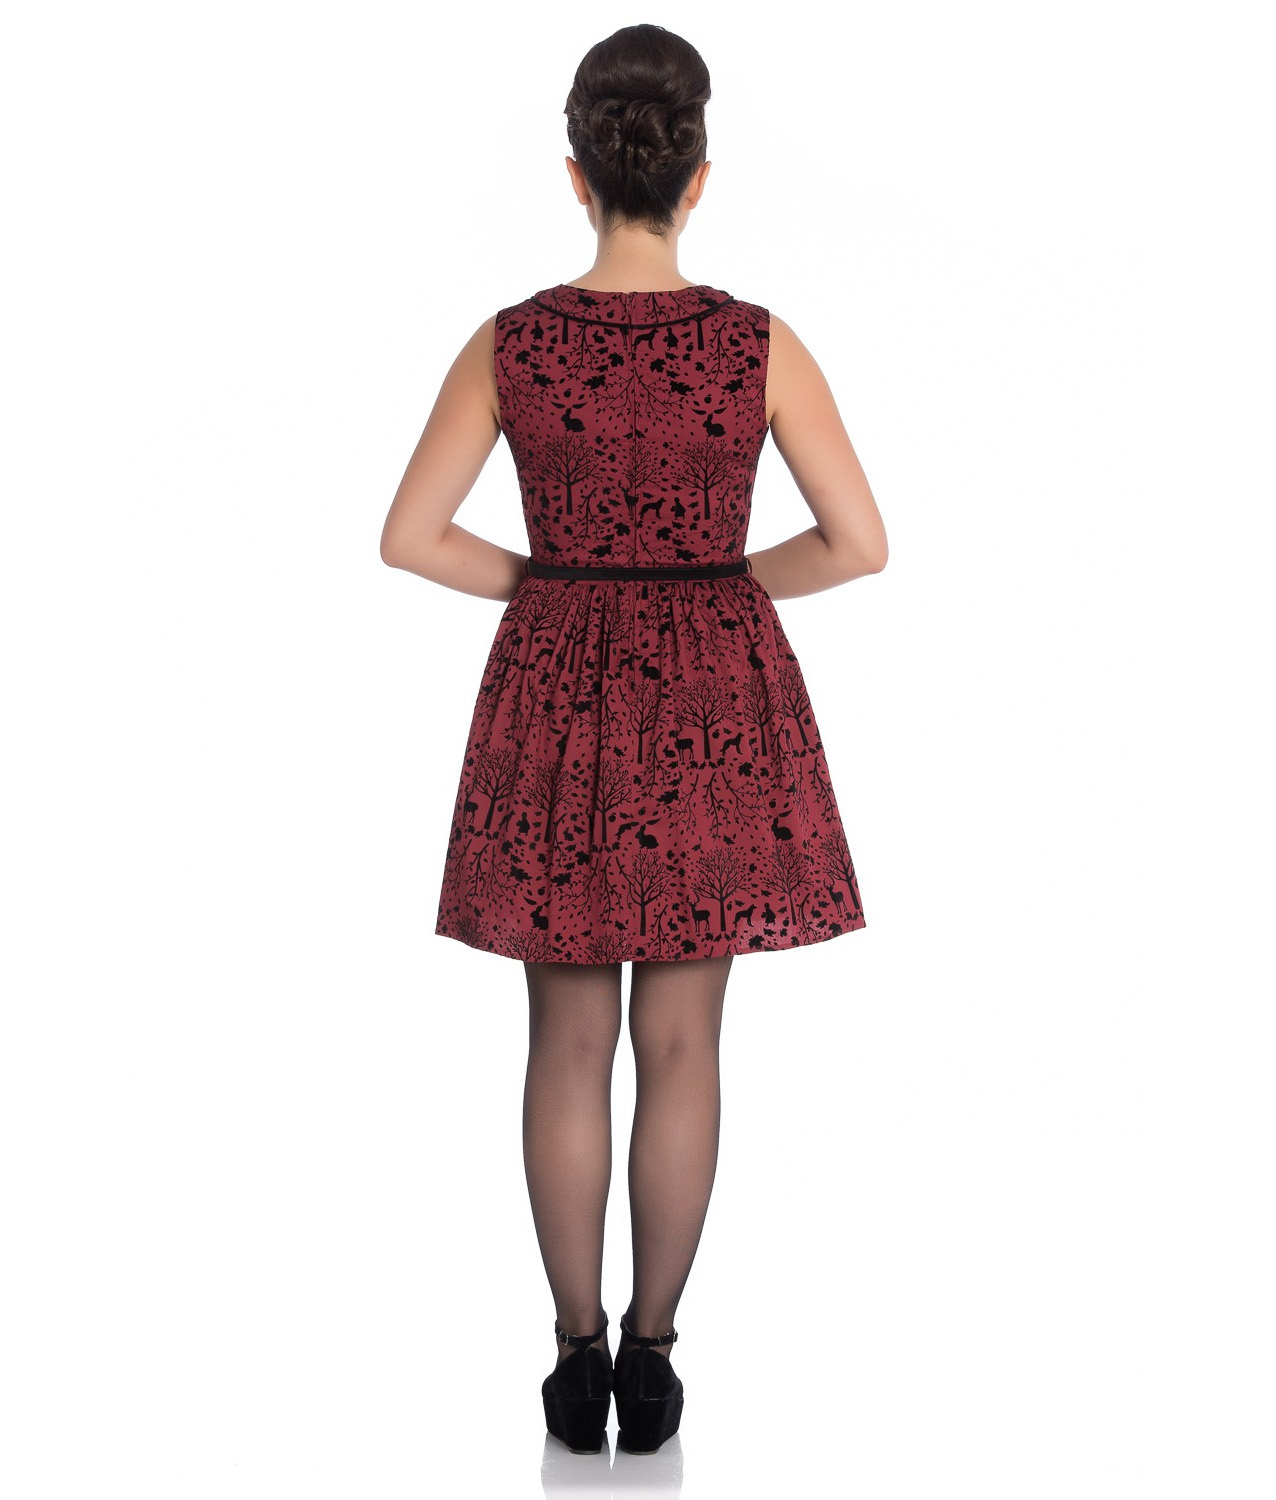 Hell-Bunny-50s-Mini-Skater-Dress-Woodland-Trees-SHERWOOD-Black-Red-All-Sizes thumbnail 33